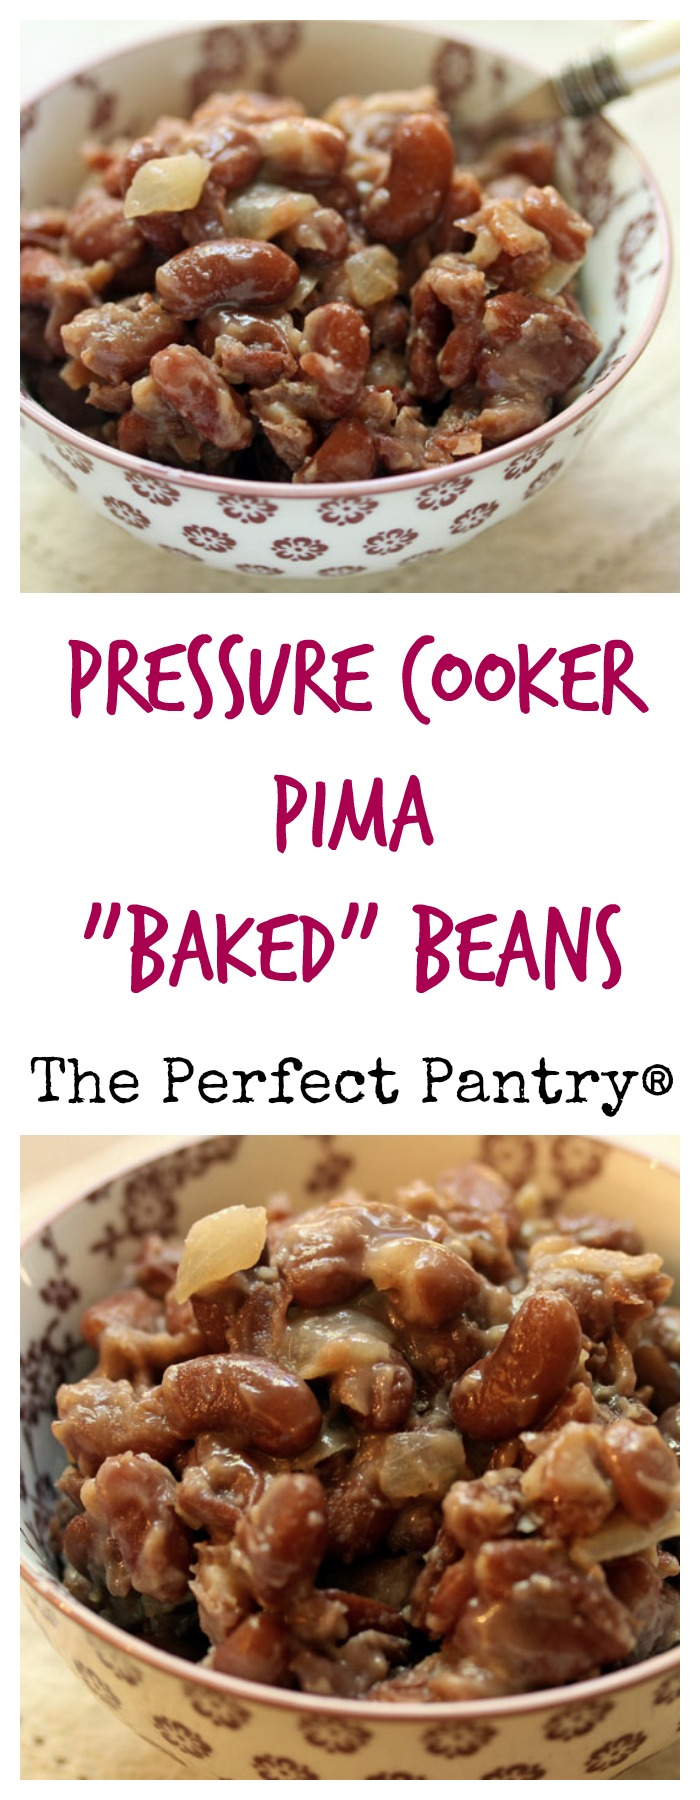 Pima baked beans, a Native American recipe made easy in the pressure cooker.